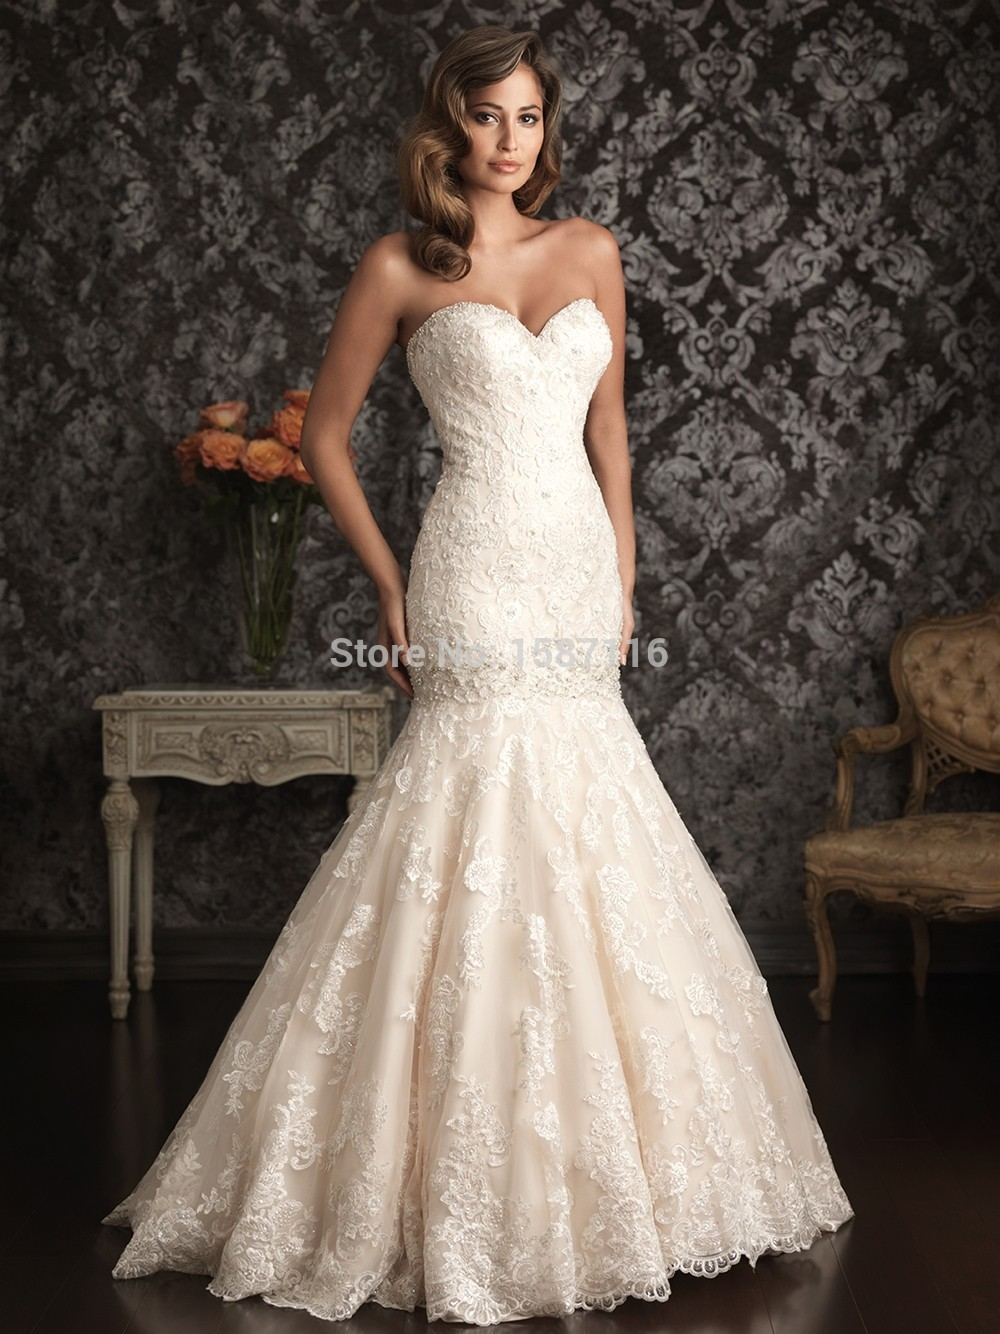 Fashion 2015 sweetheart mermaid wedding dresses floor for Beaded lace mermaid wedding dress